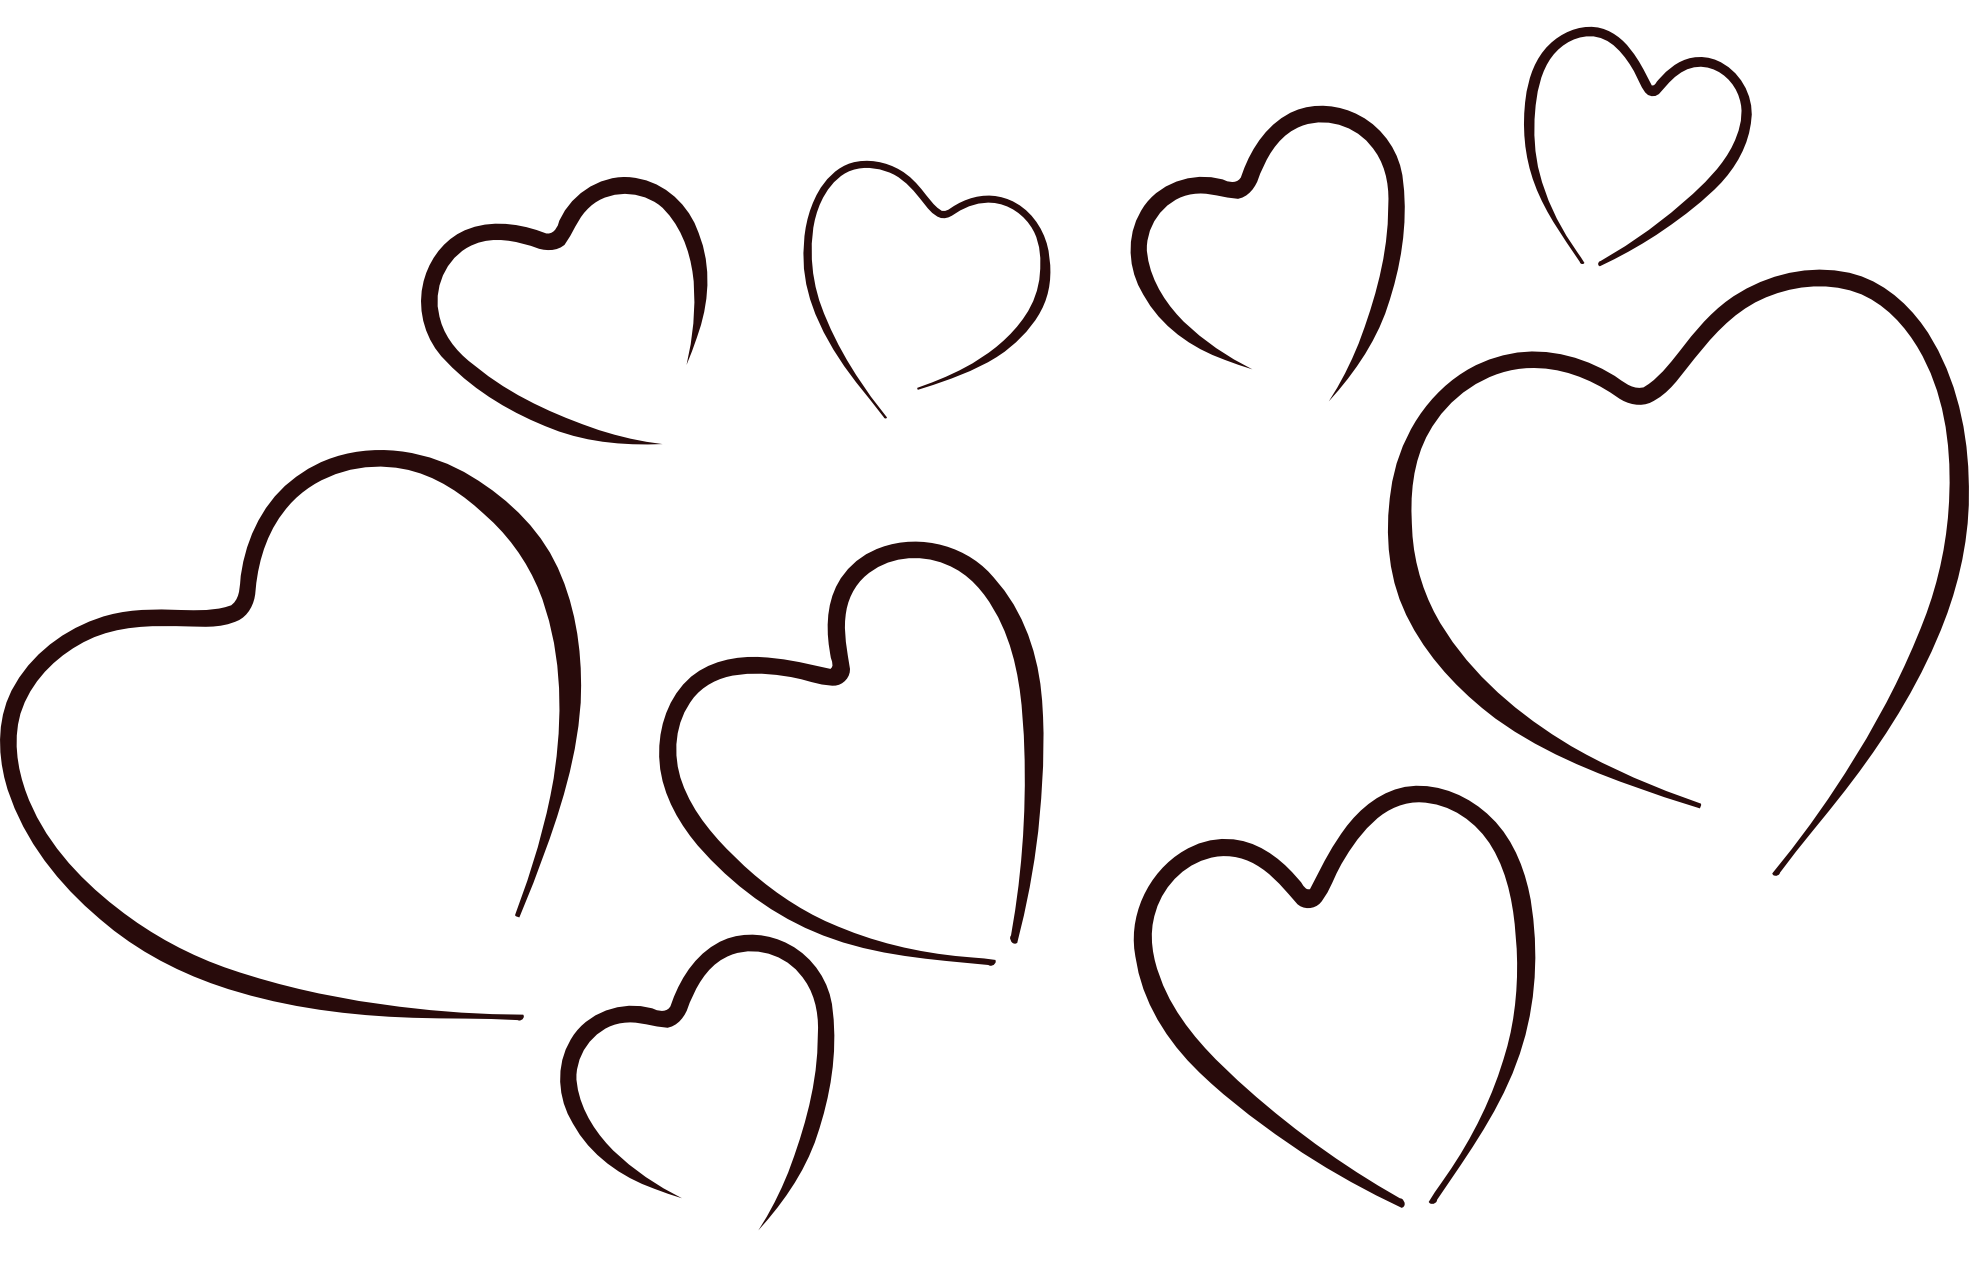 Heart black and white row of hearts clipart black and white